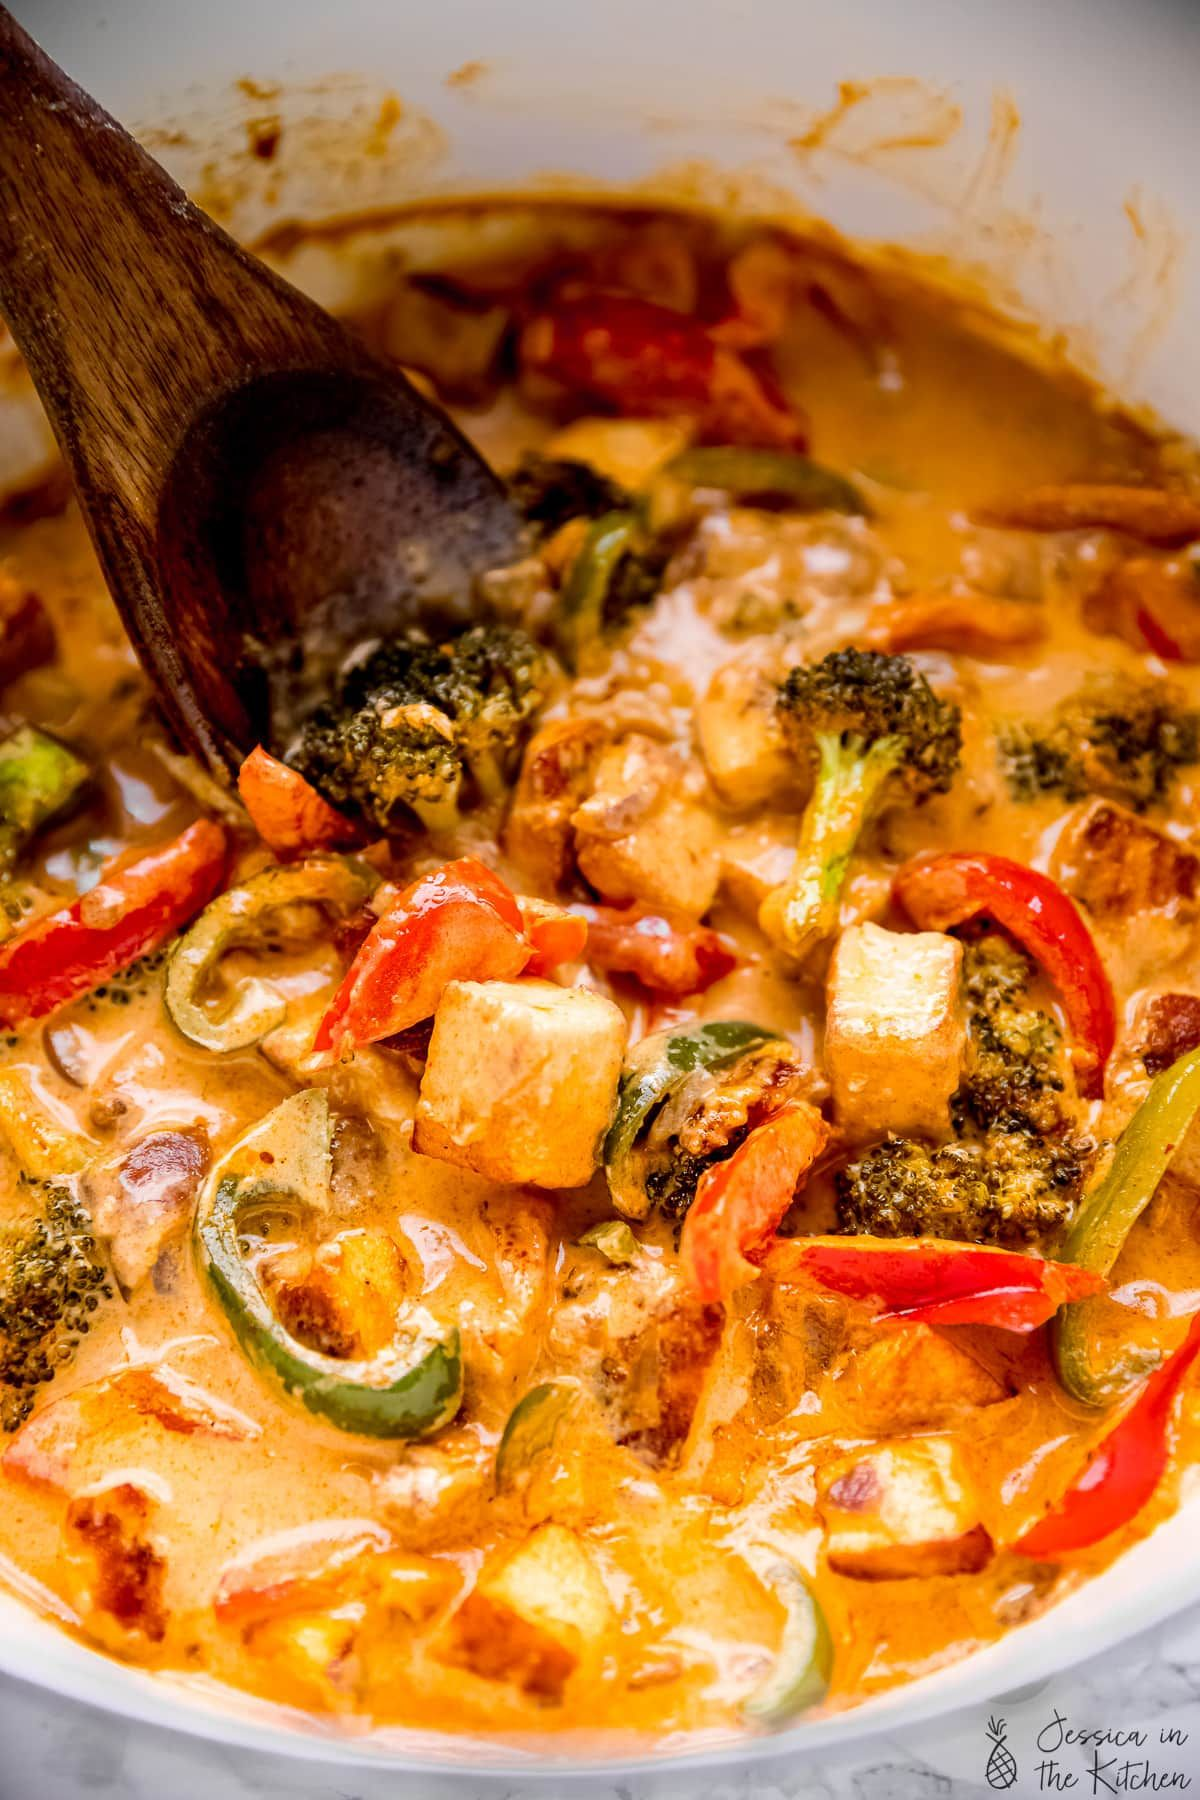 This Vegan Thai Red Curry With Tofu Tastes Absolutely Phenomenal It Has A Short Prep Time Is Loaded With Ri Tofu Curry Curry Recipes Vegetarian Curry Recipes